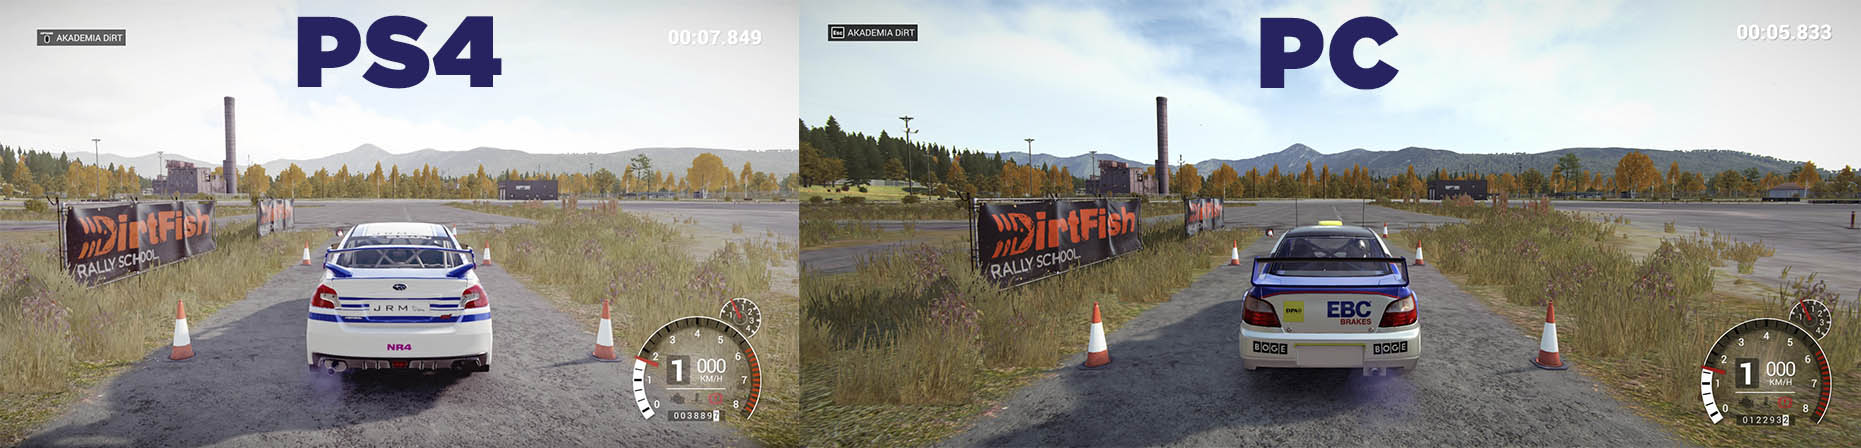 dirt 4 ps4 pc graphics